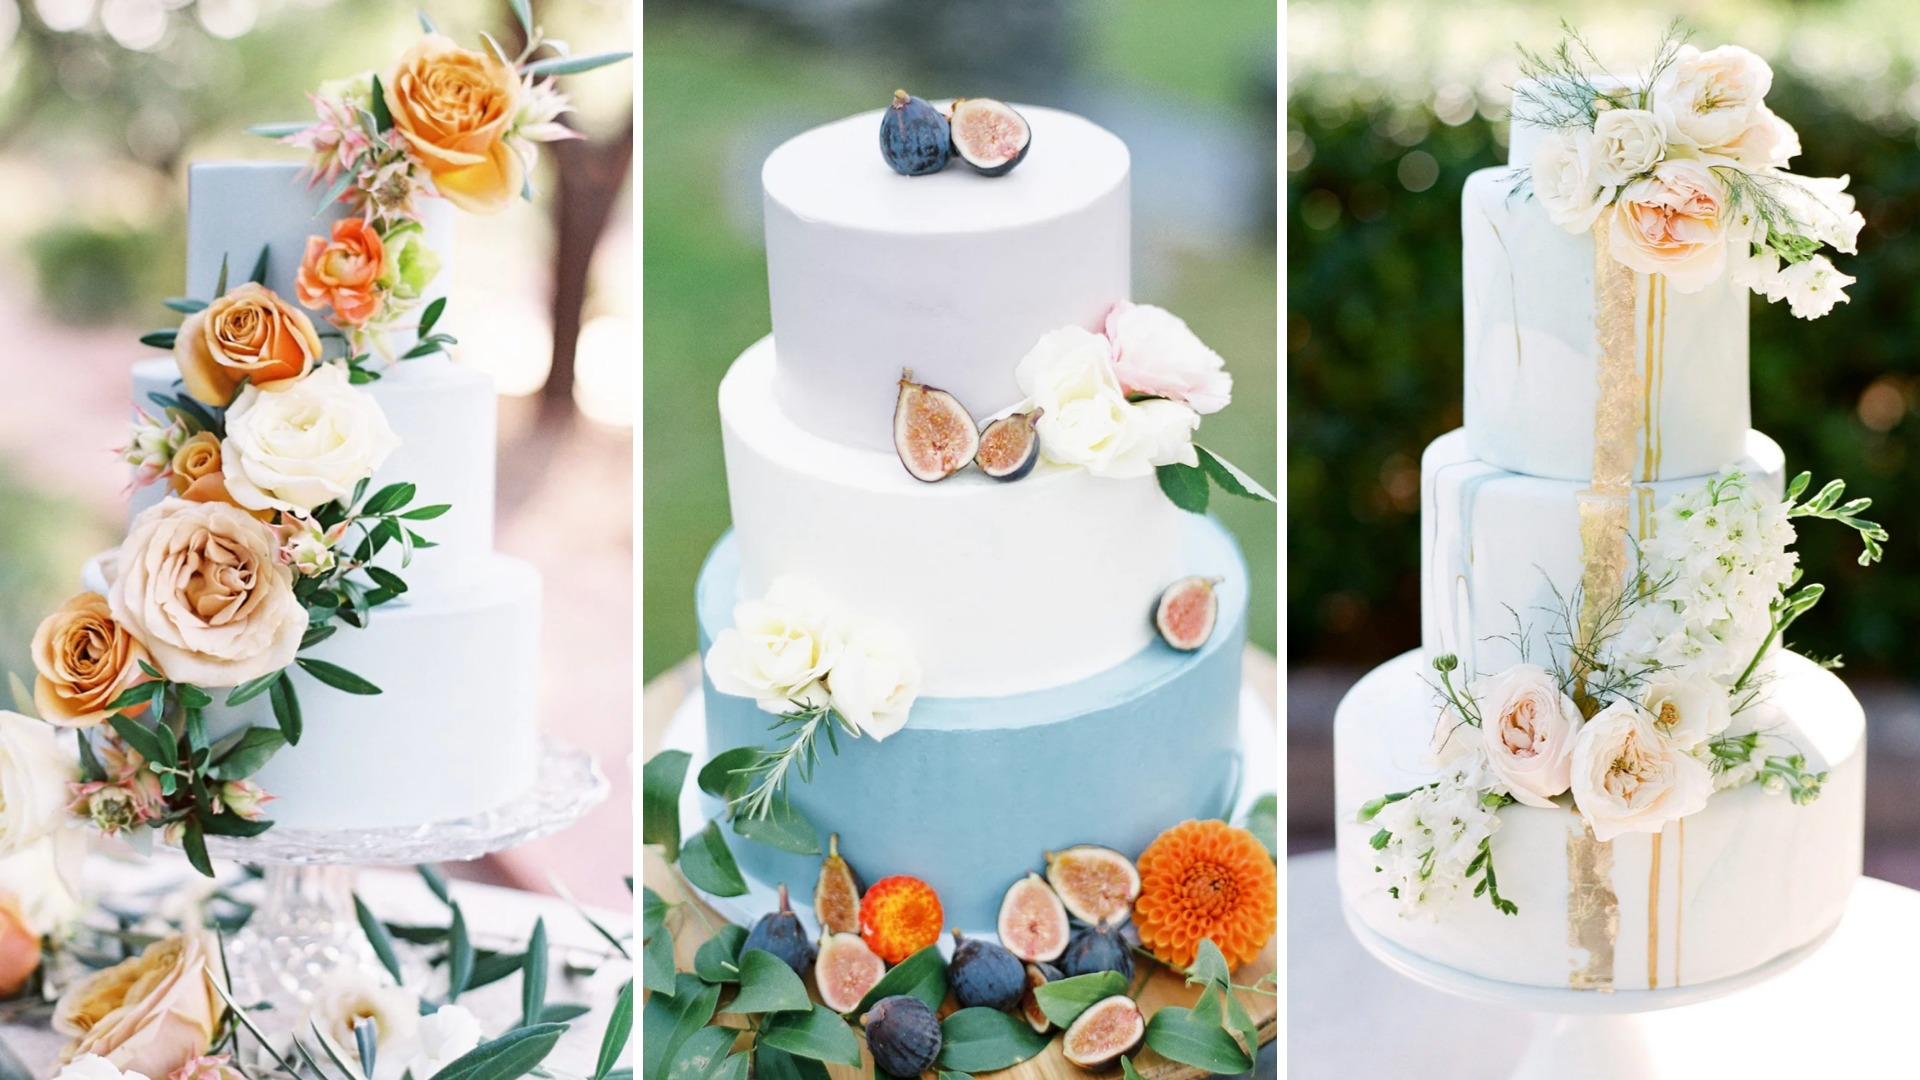 Wedding Cakes, gâteau de mariage - Wedding Planner Reims - Perfect Moment by A